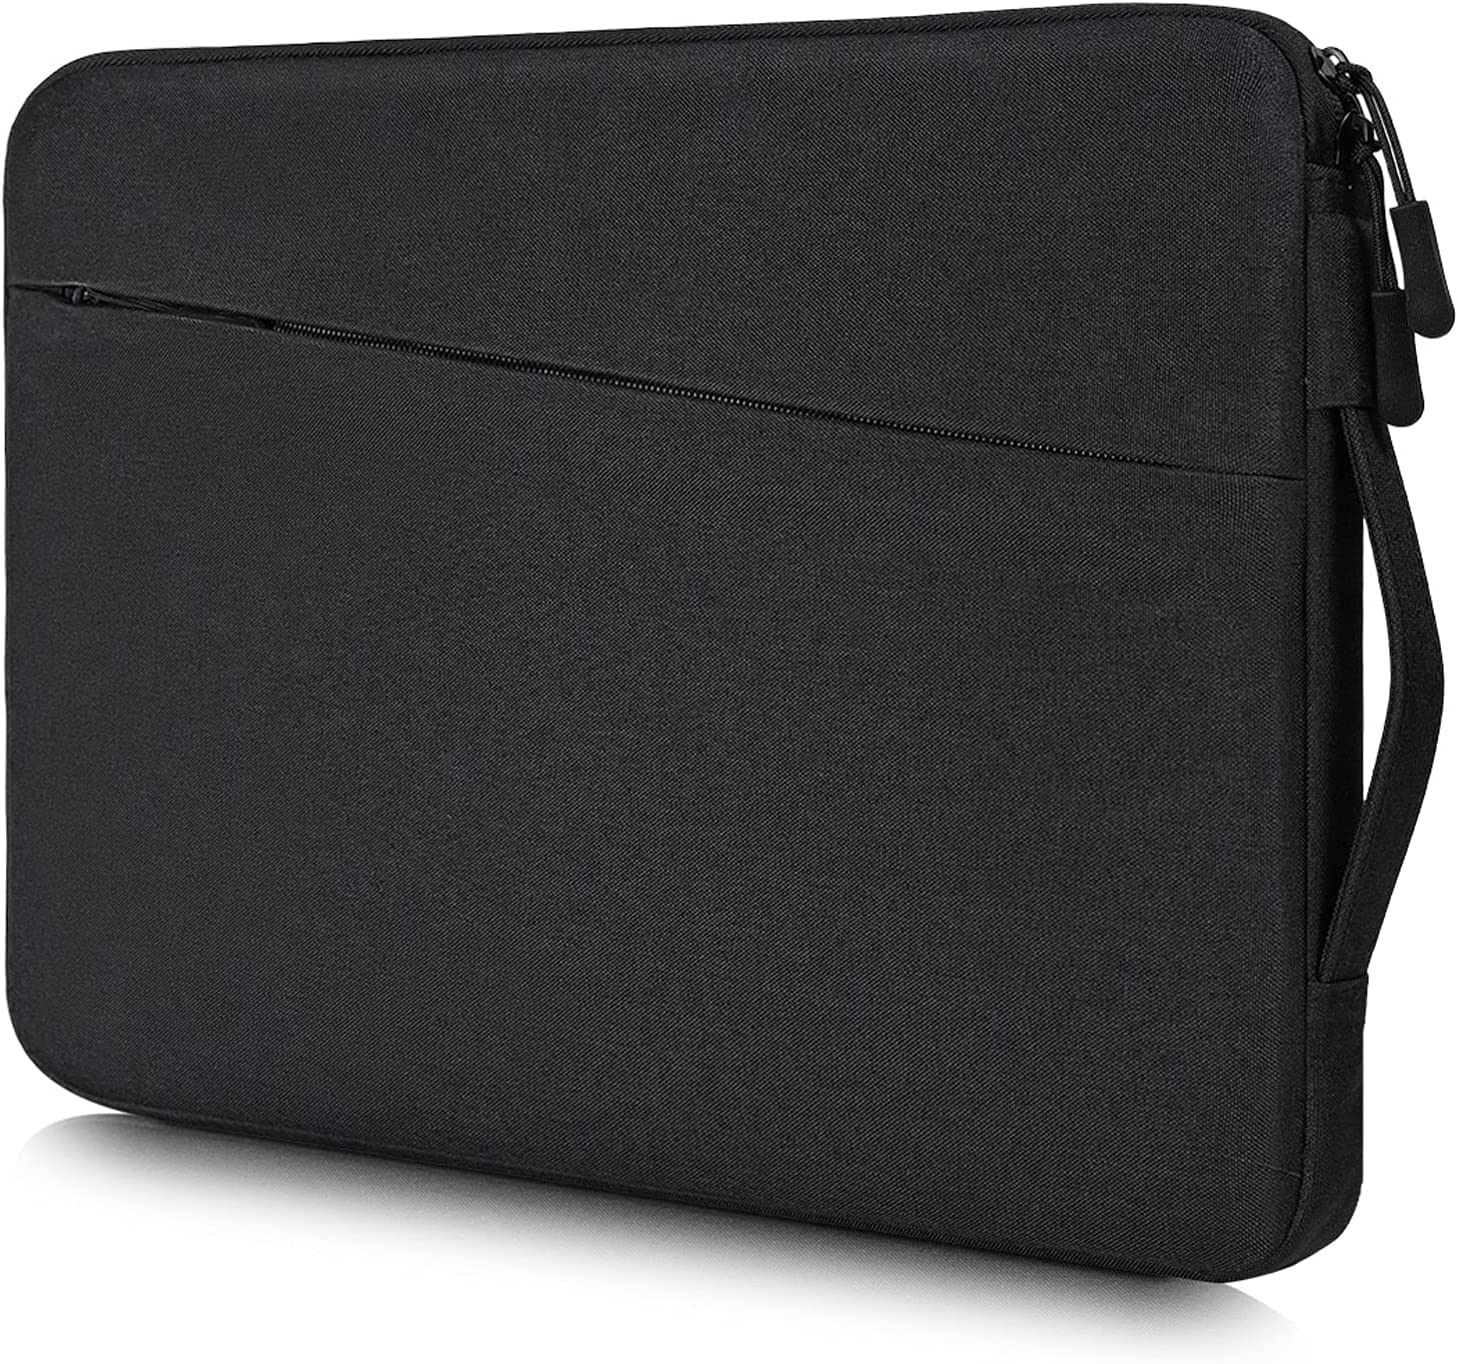 15.6 Inch Factory outlet Large discharge sale Waterproof Laptop Bag for Han Women Men with Briefcase